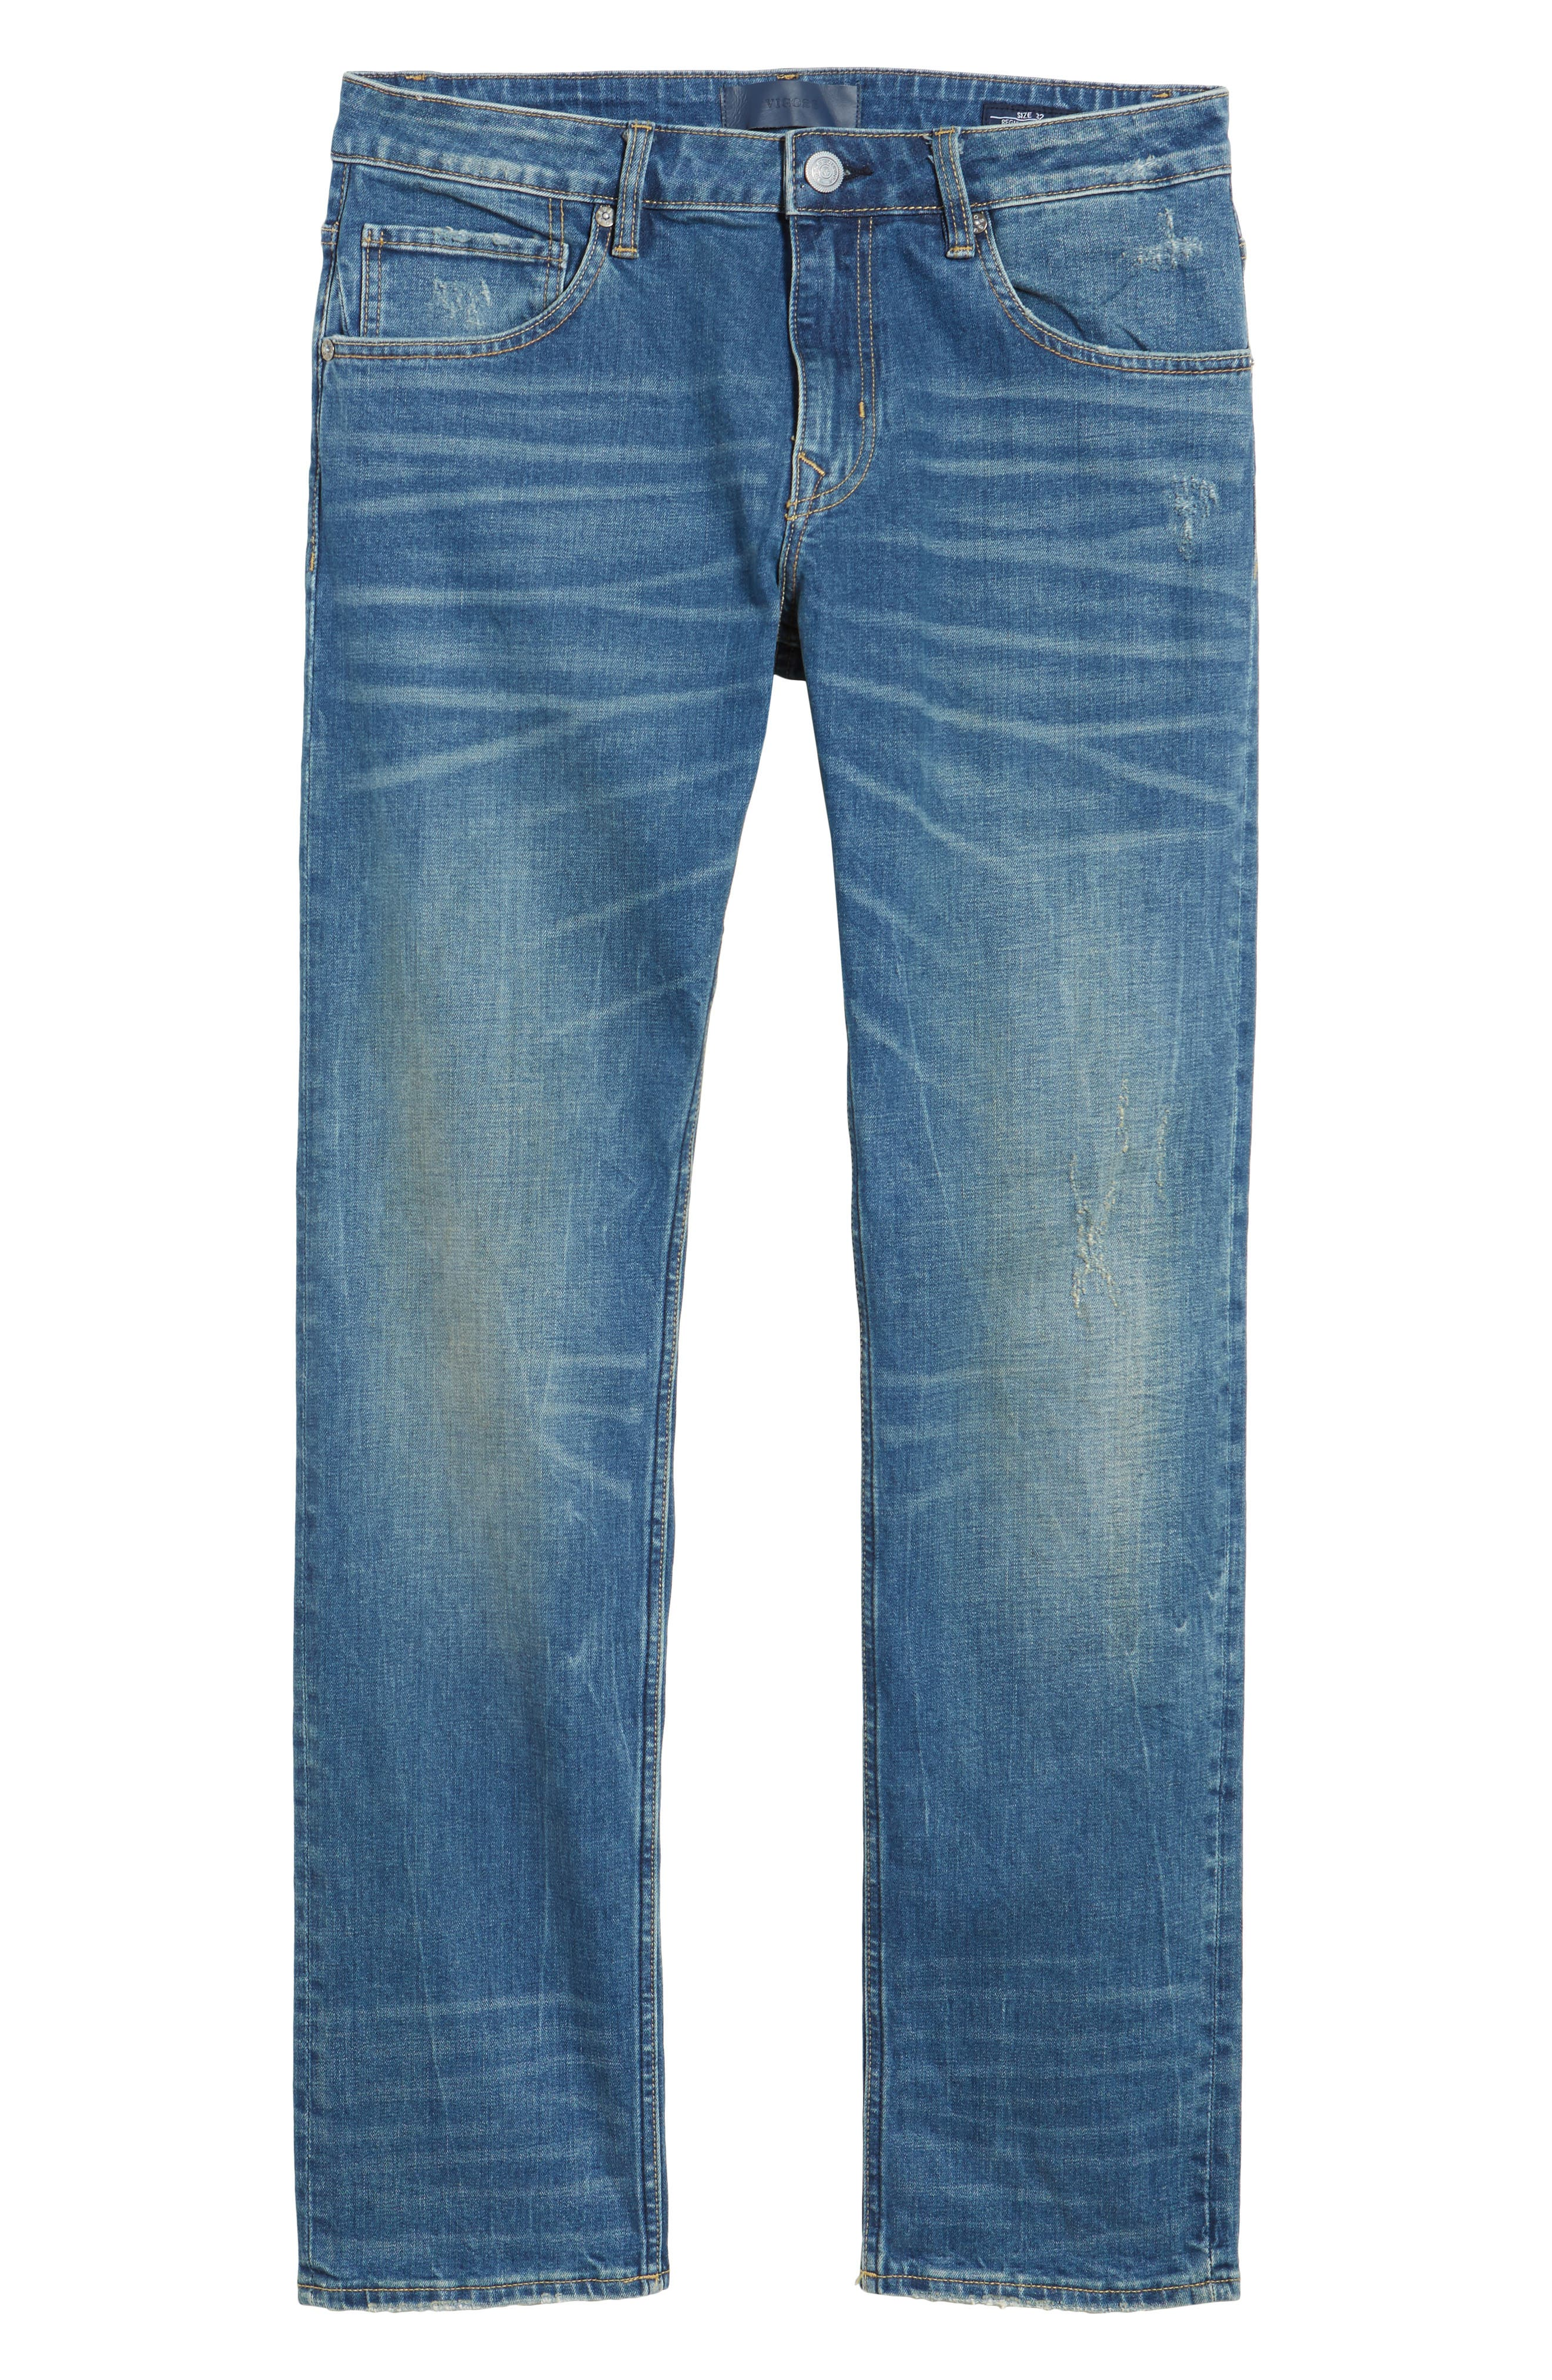 Slim Straight Leg Jeans,                             Alternate thumbnail 6, color,                             TINT LIGHT